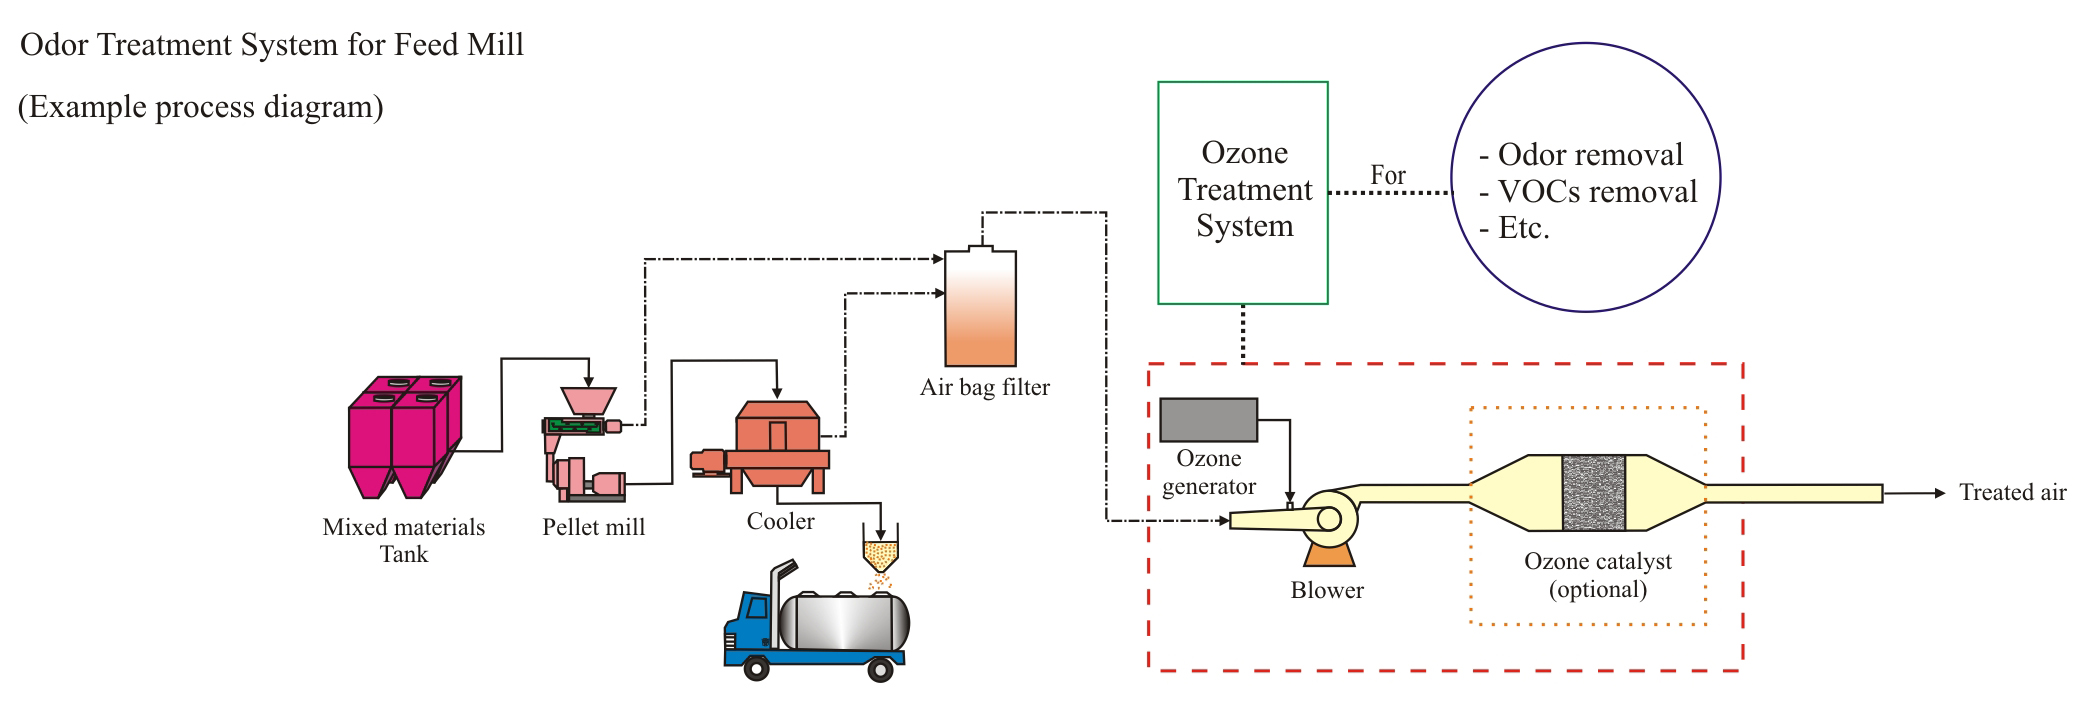 Example Process Diagram Of Ozone System Innovation Ideas Co Ltd Generator Circuit Air Odor Treatment For Feed Mill